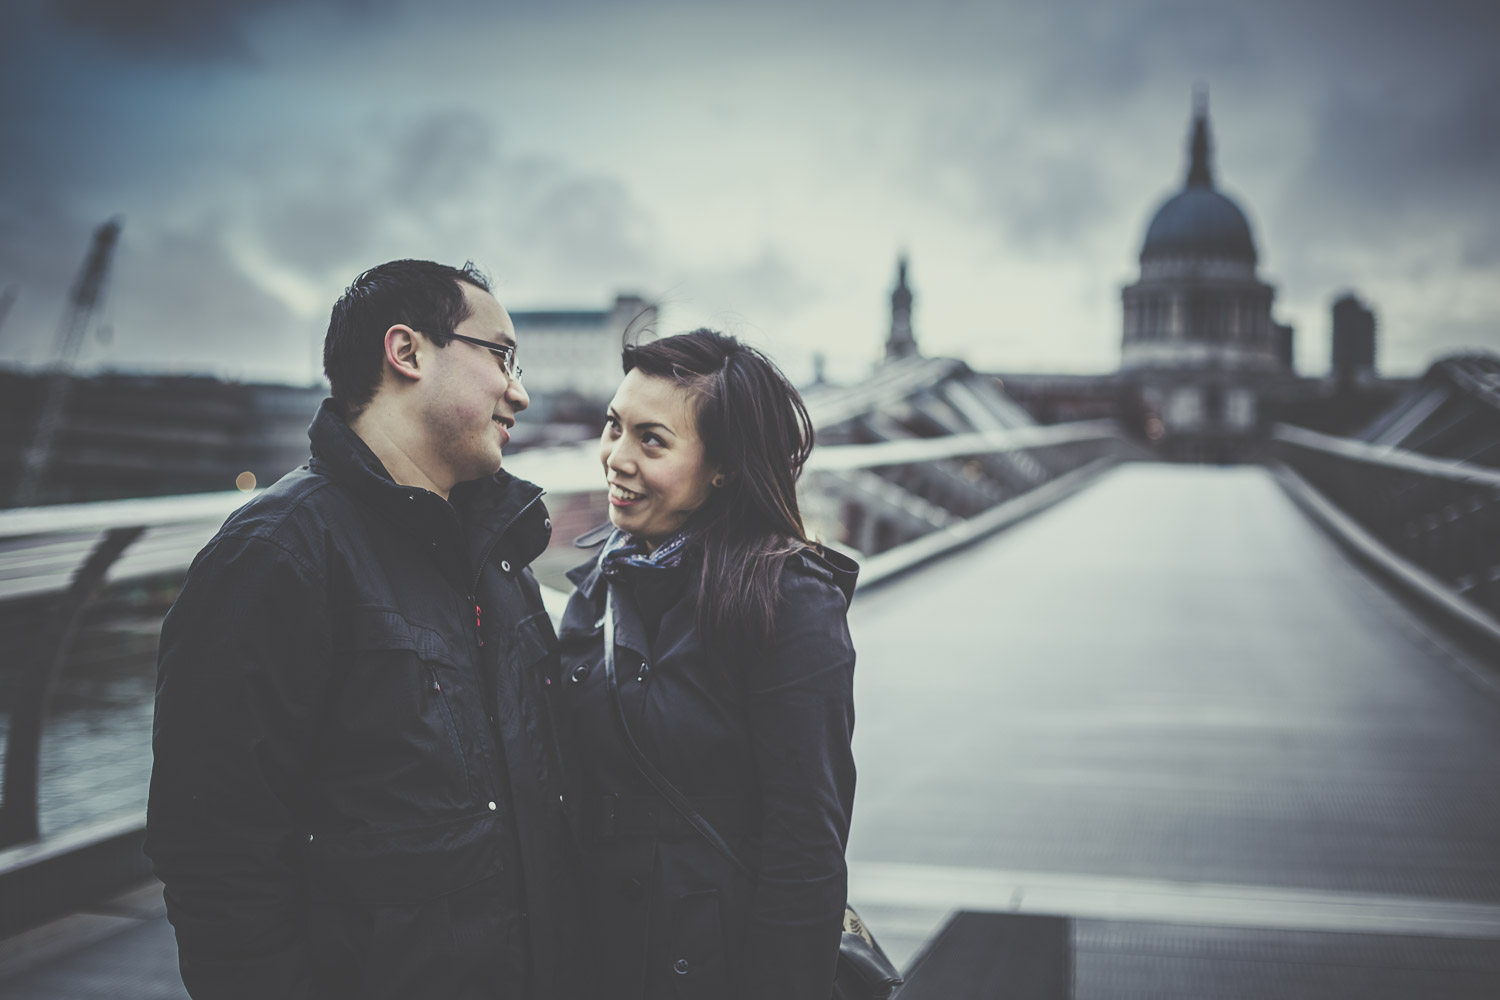 pre-wedding-engagement-session-in-london-portchester-and-notting-hill-hampshire-wedding-photographer-42.jpg